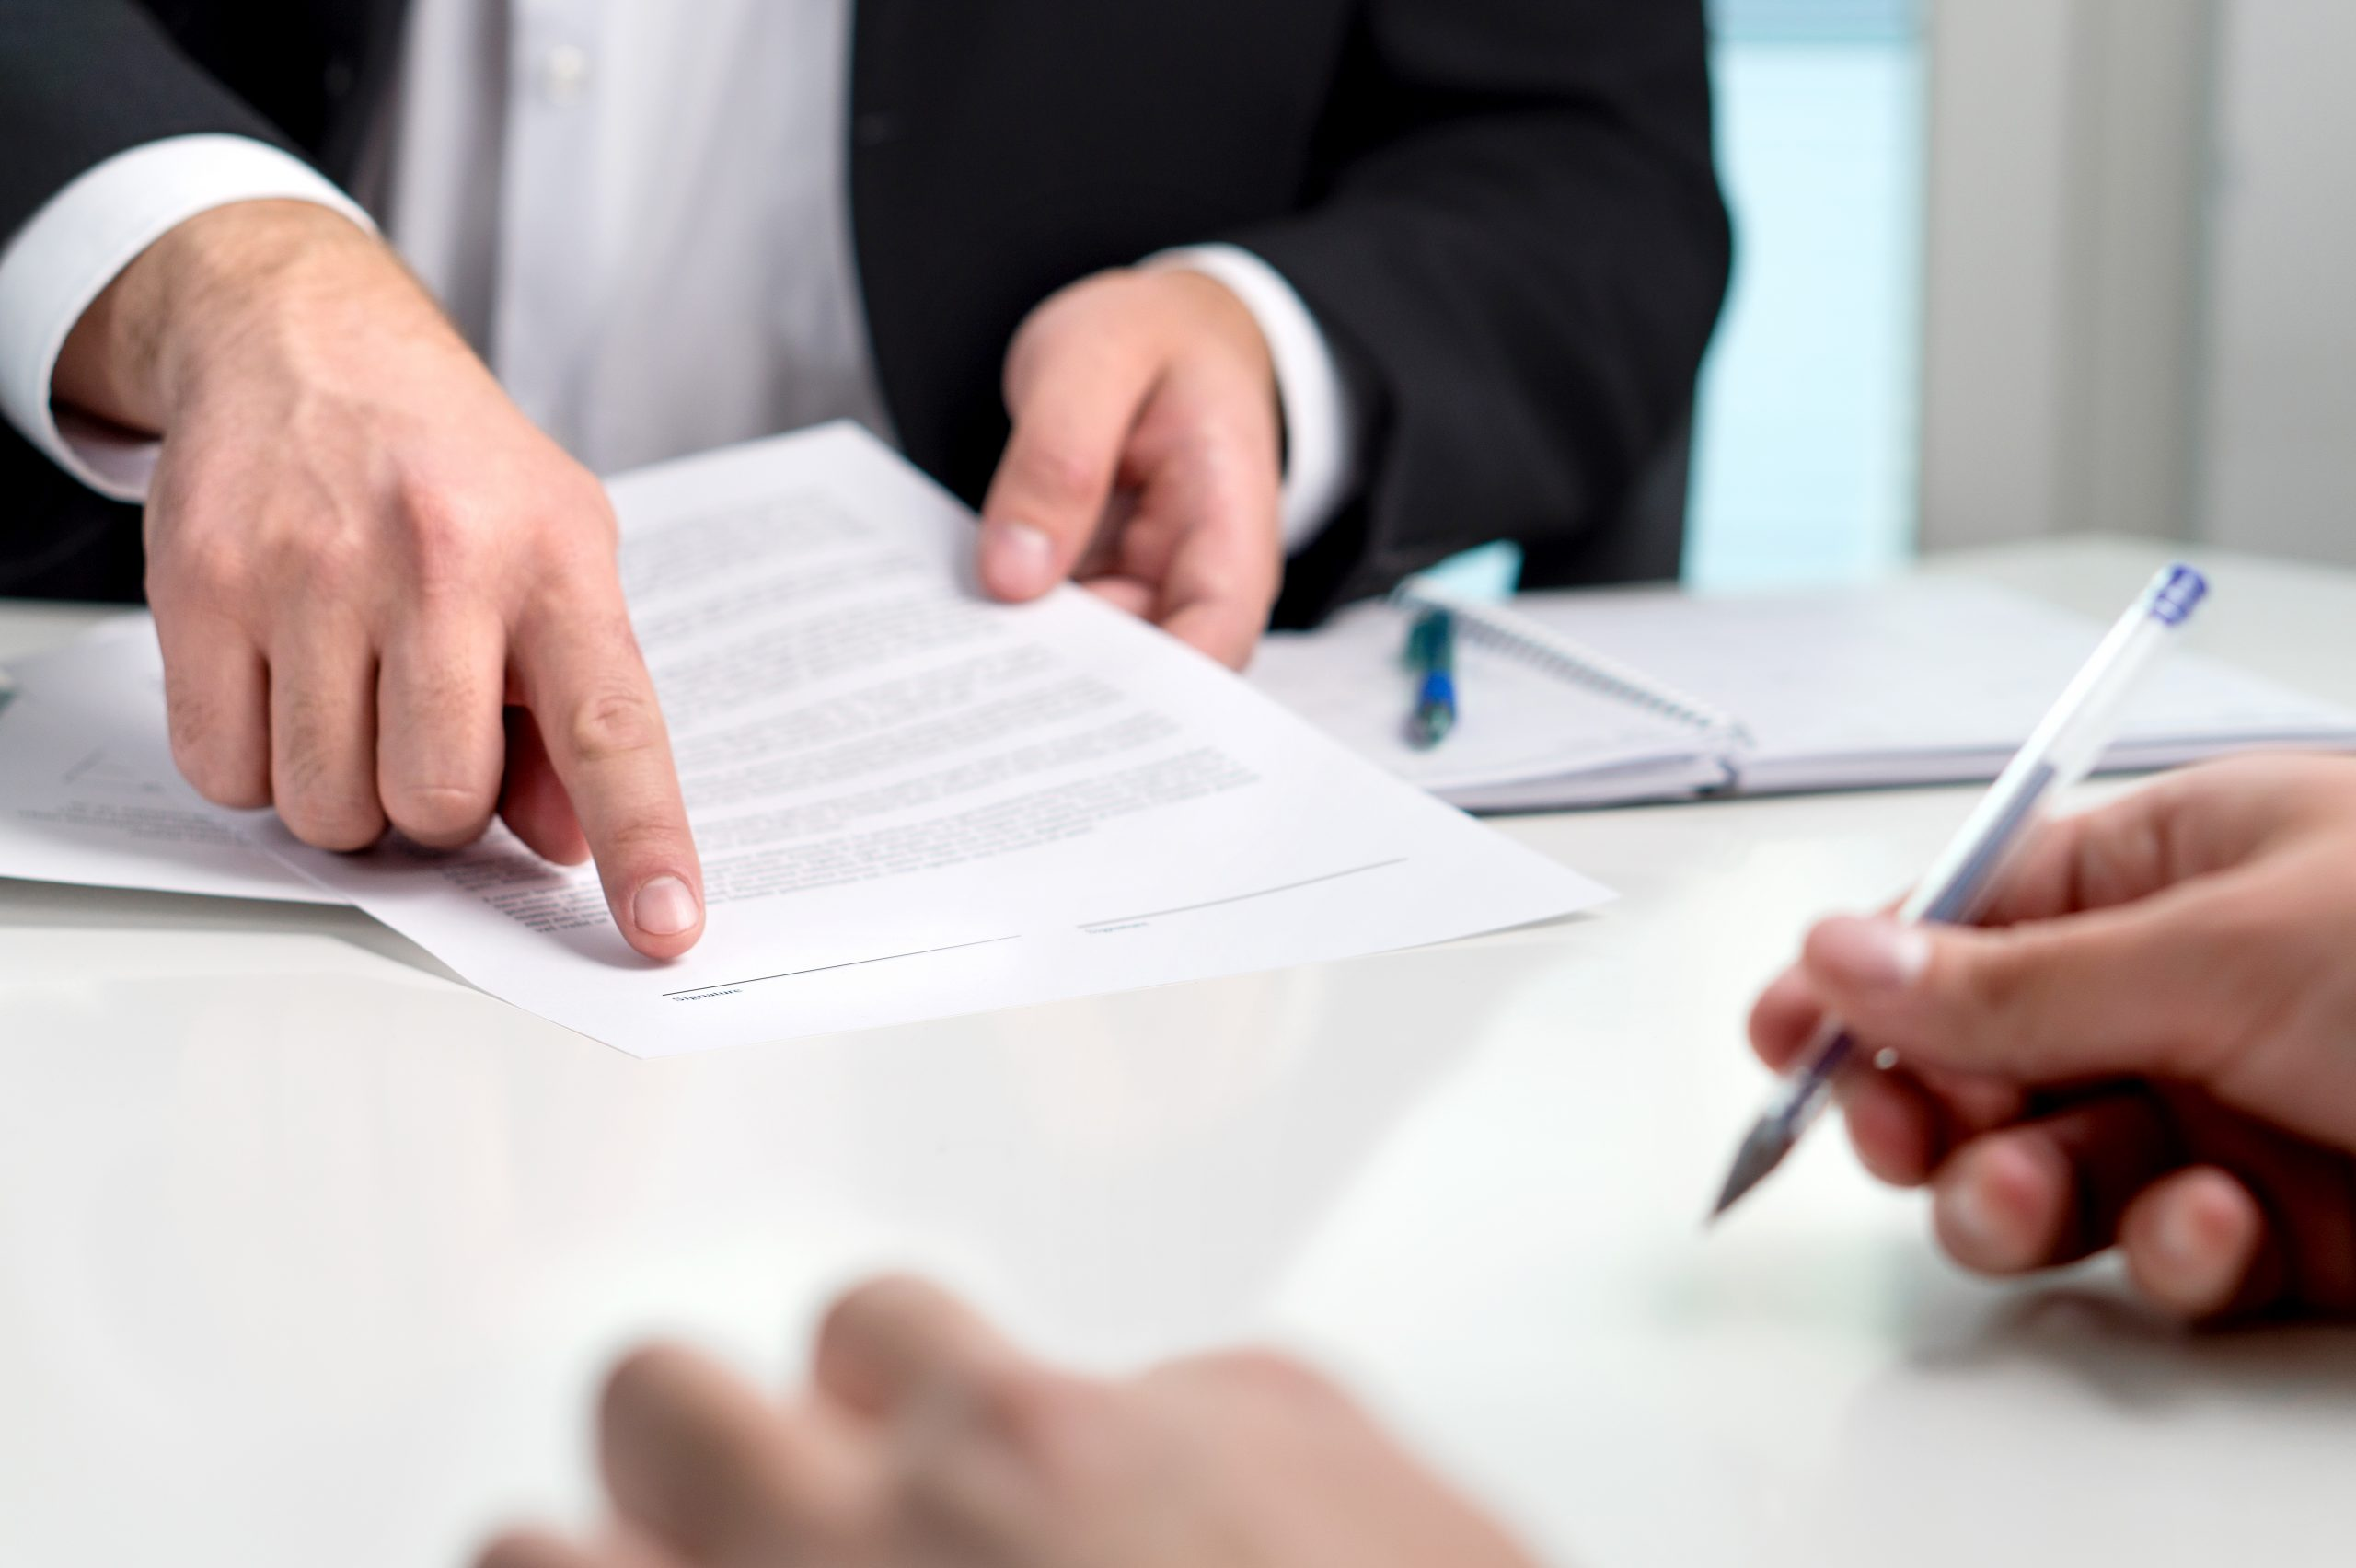 Man signing document of his expression of wish